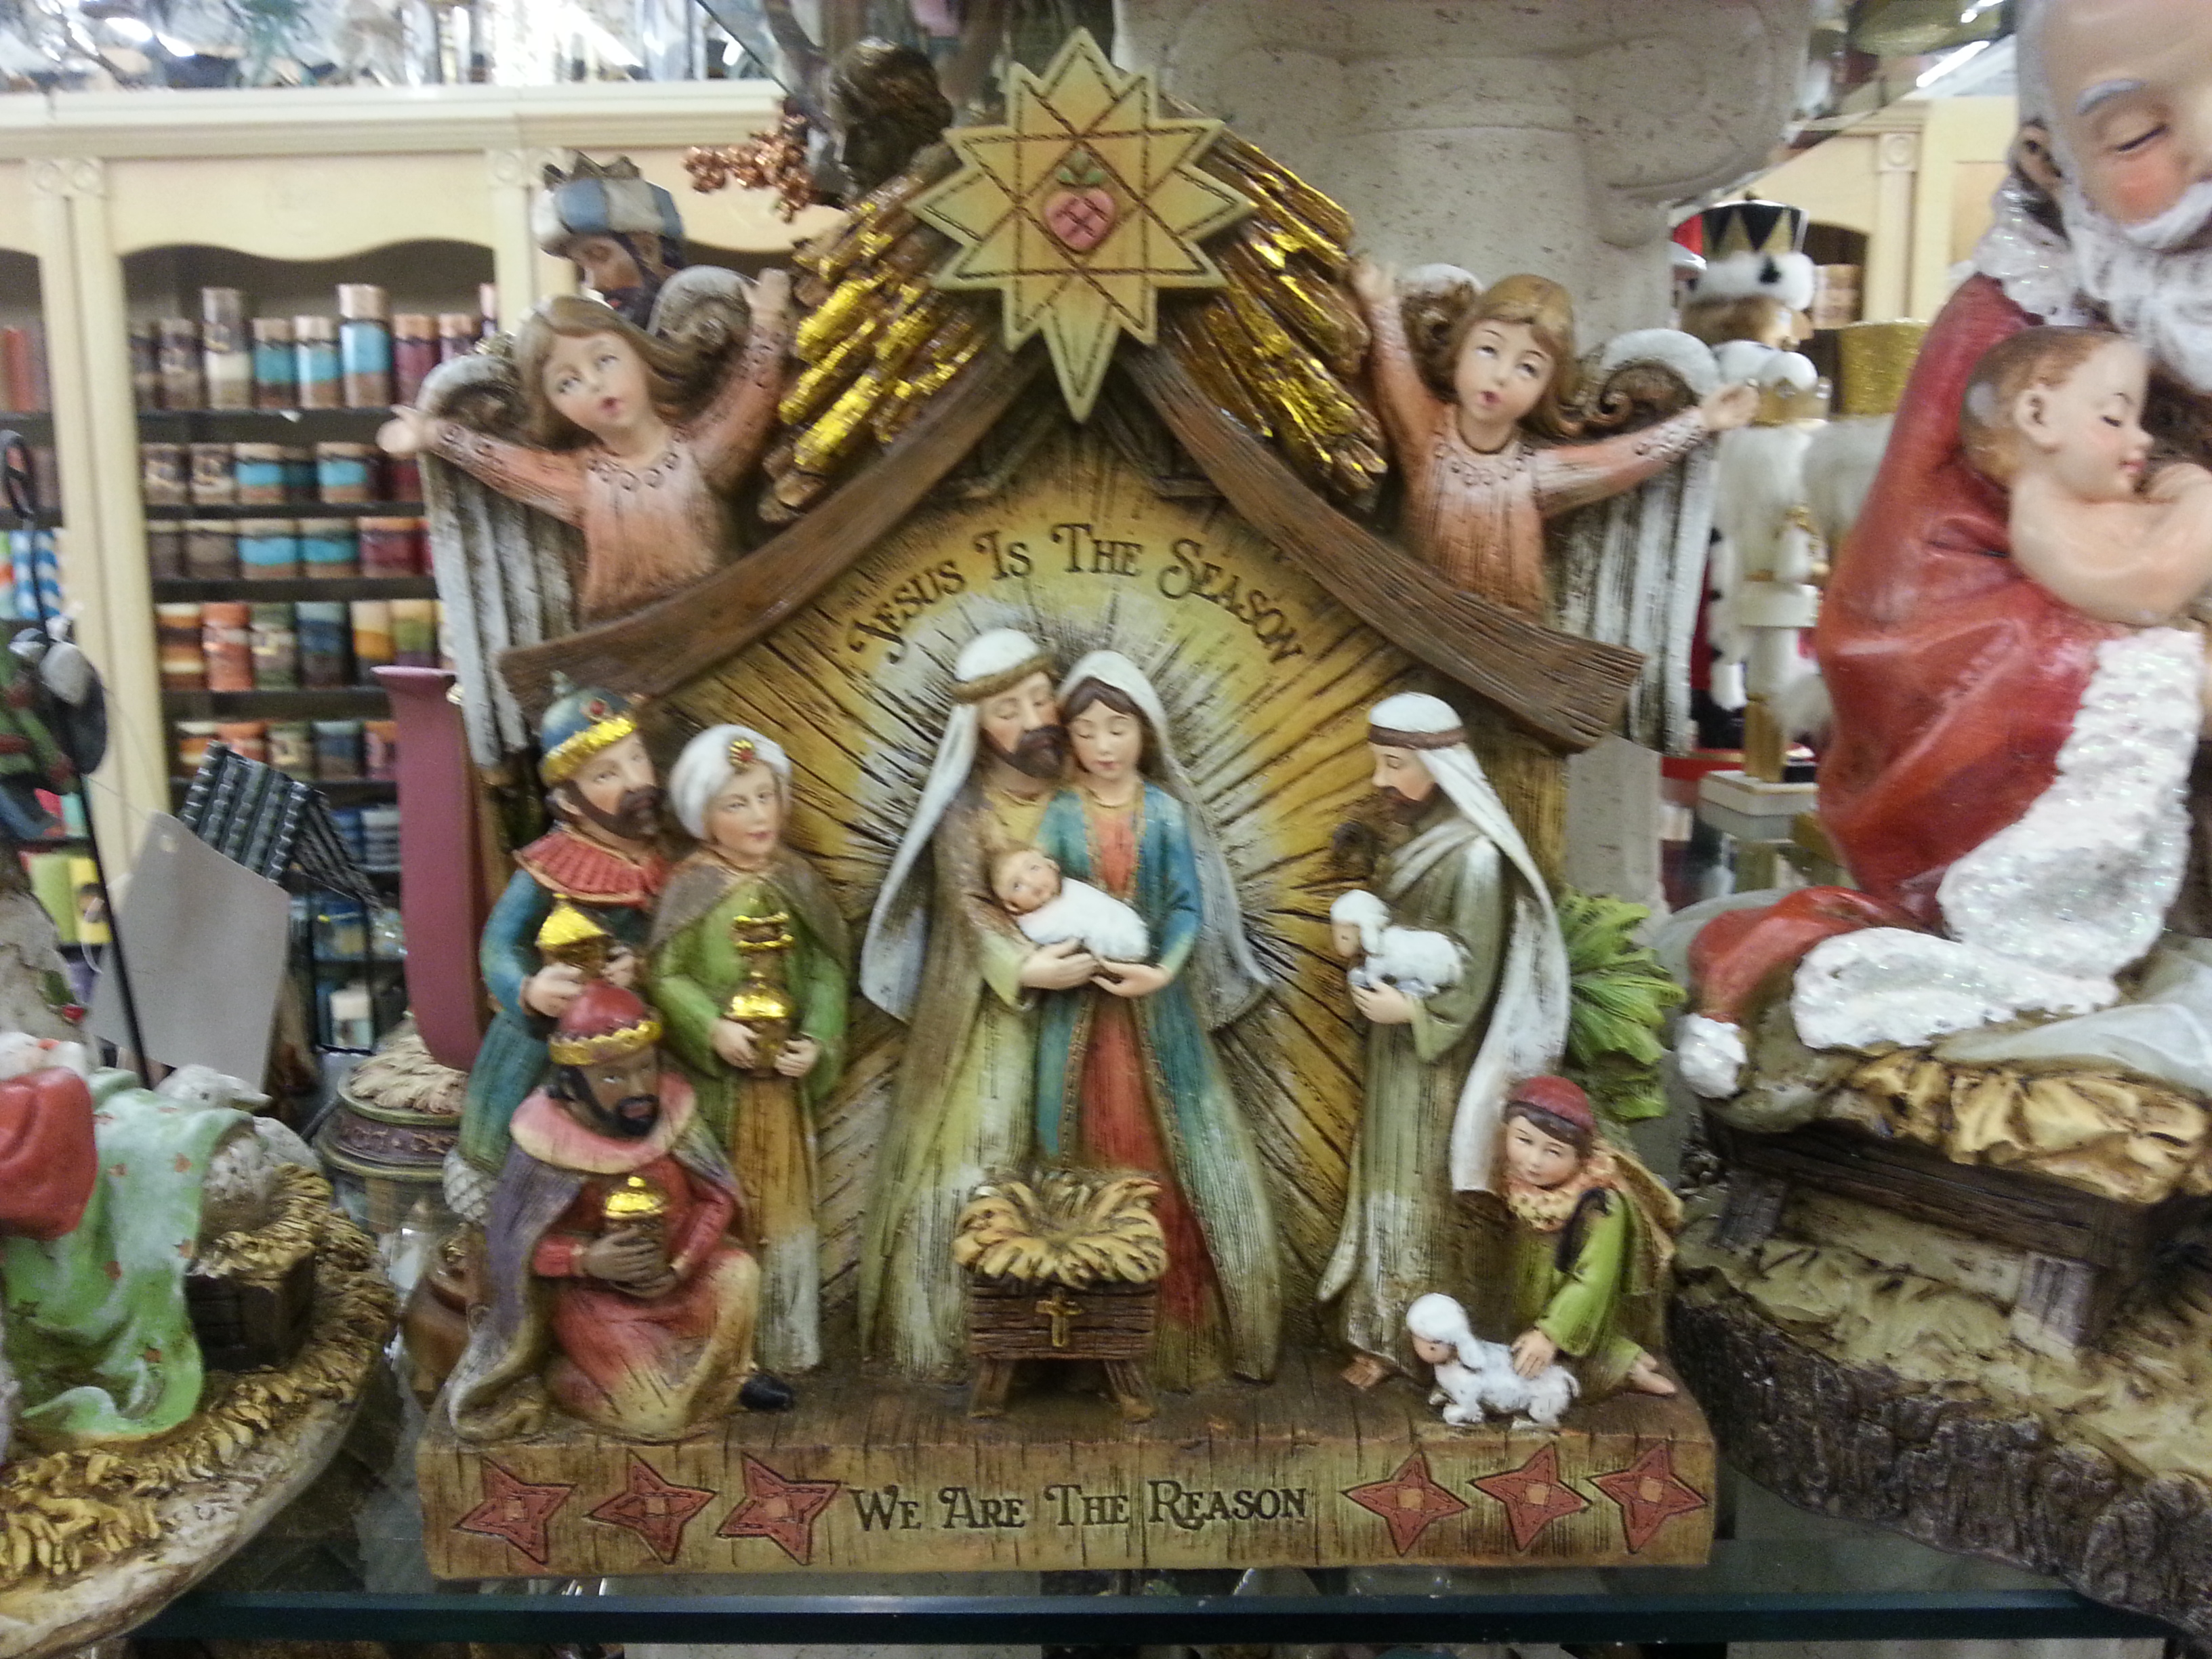 Christmas, nativity, creche, Jesus, hope, peace, serenity